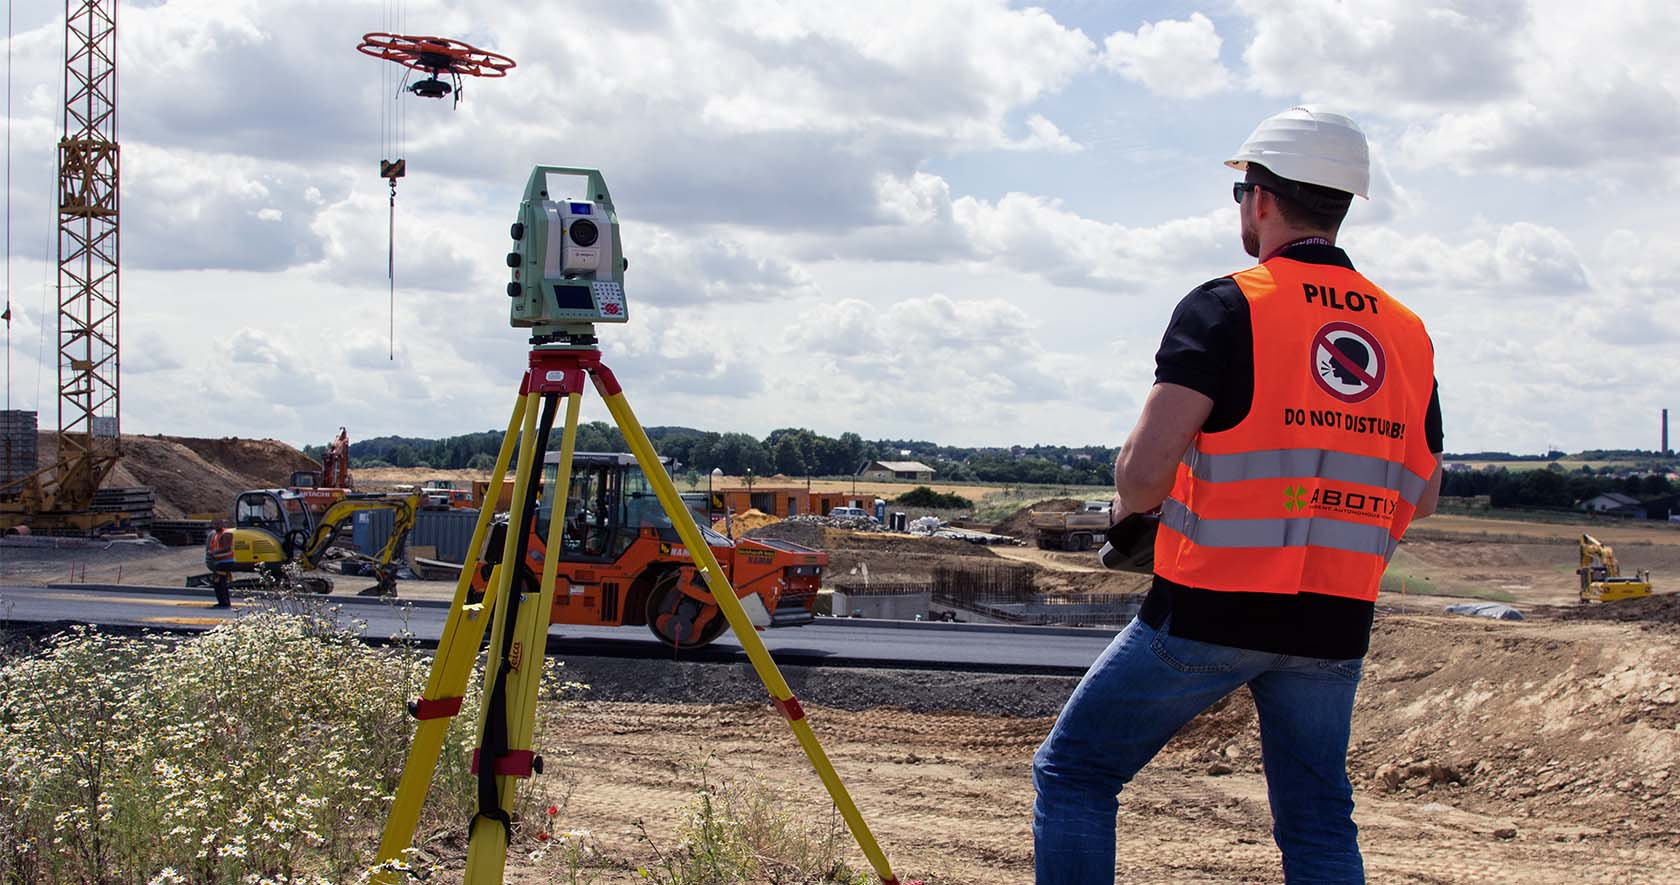 drones used in construction industry